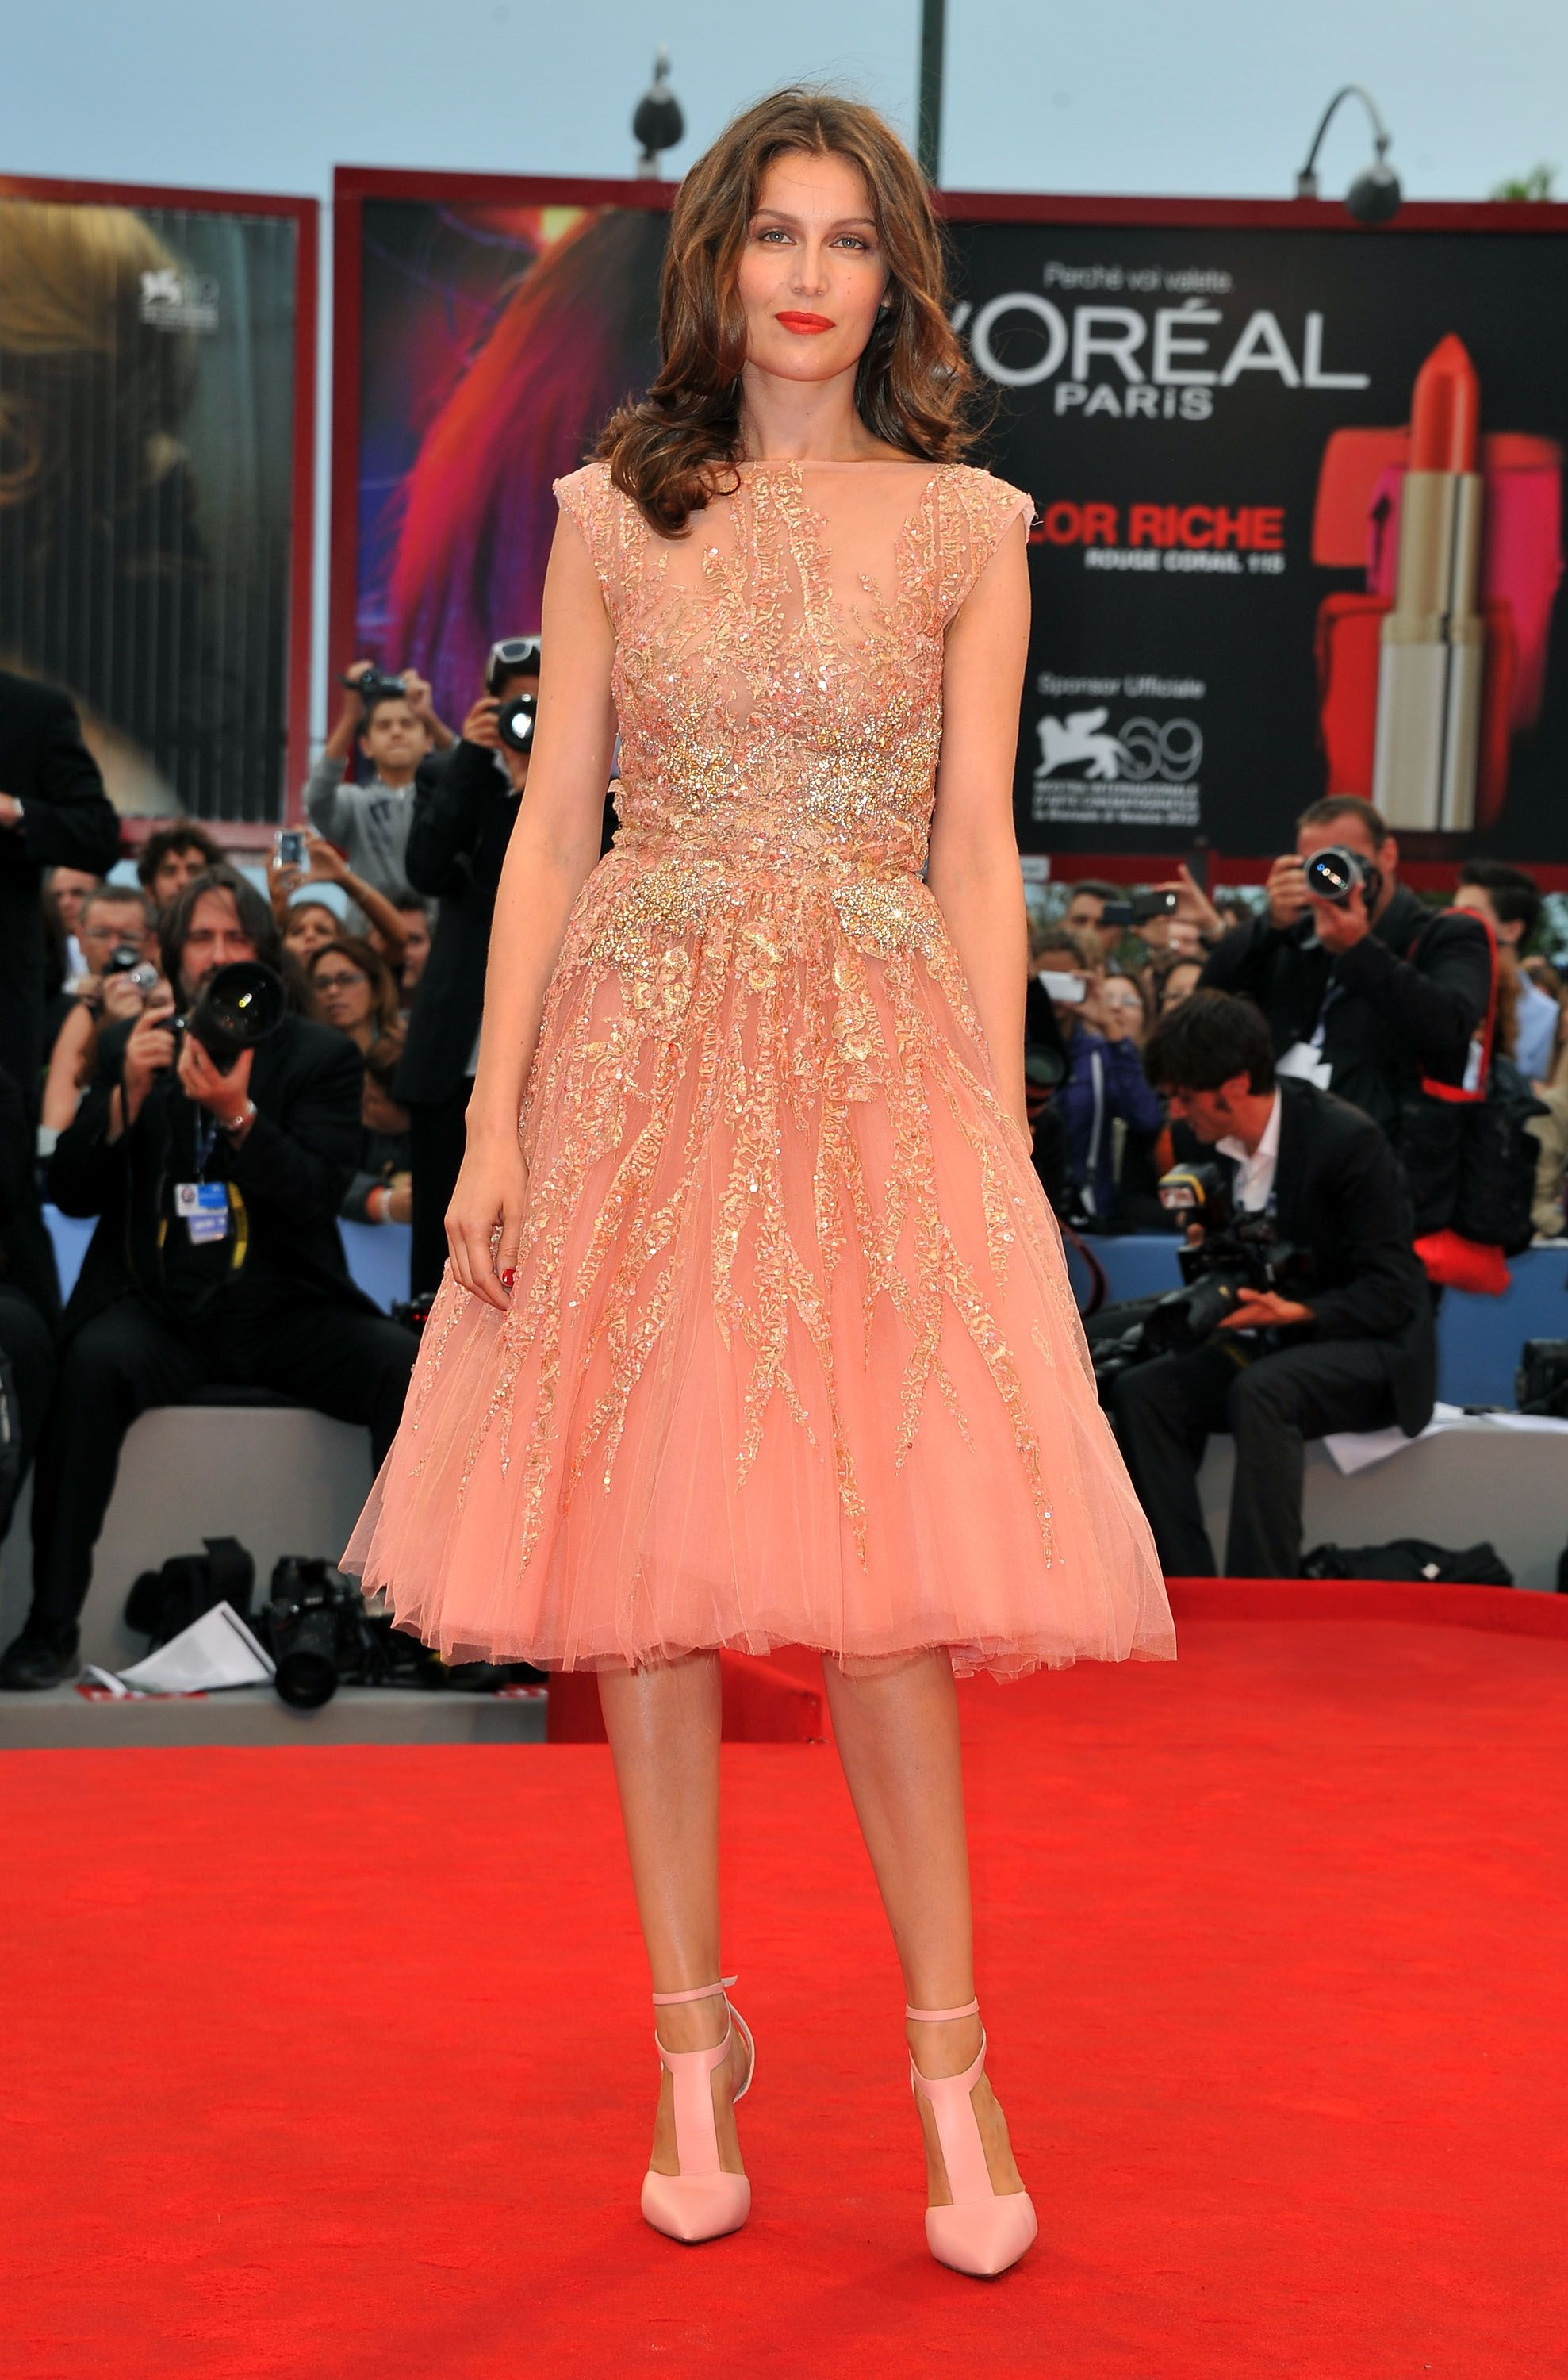 Laetitia Casta in ELIE SAAB Haute Couture Fall-Winter 2012-13 at the 'Master' Premiere at the 69th Venice International Film Festival.